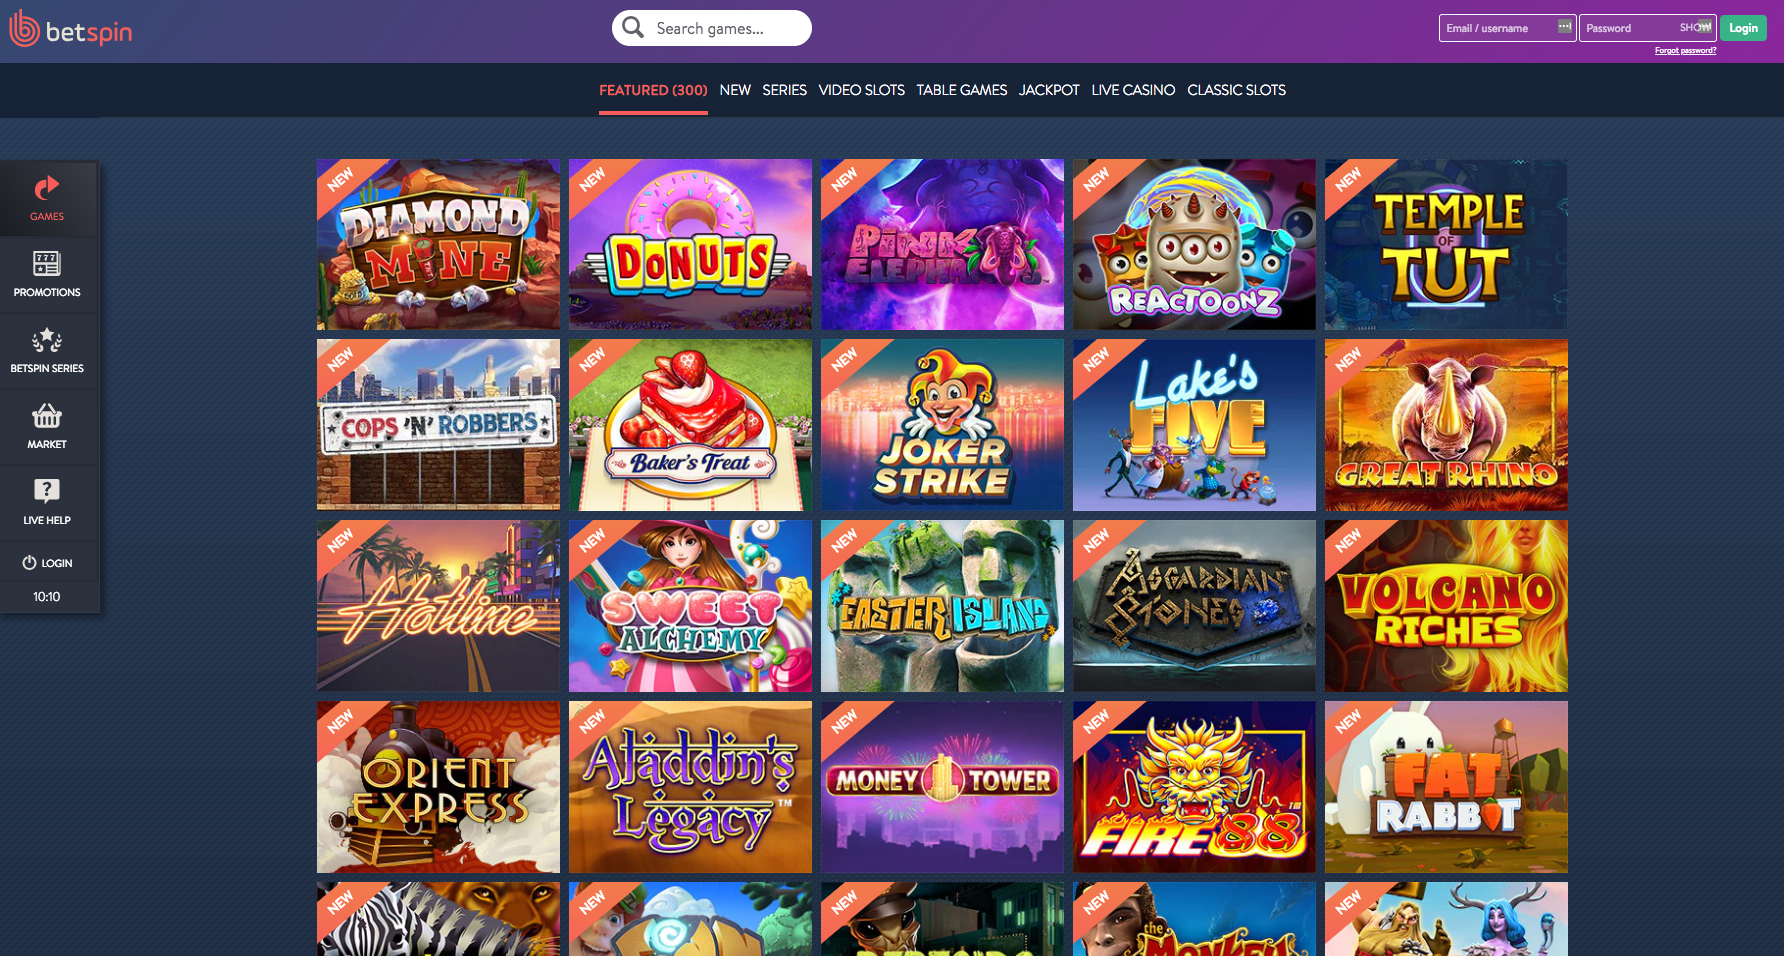 Popular games at Betspin Casino